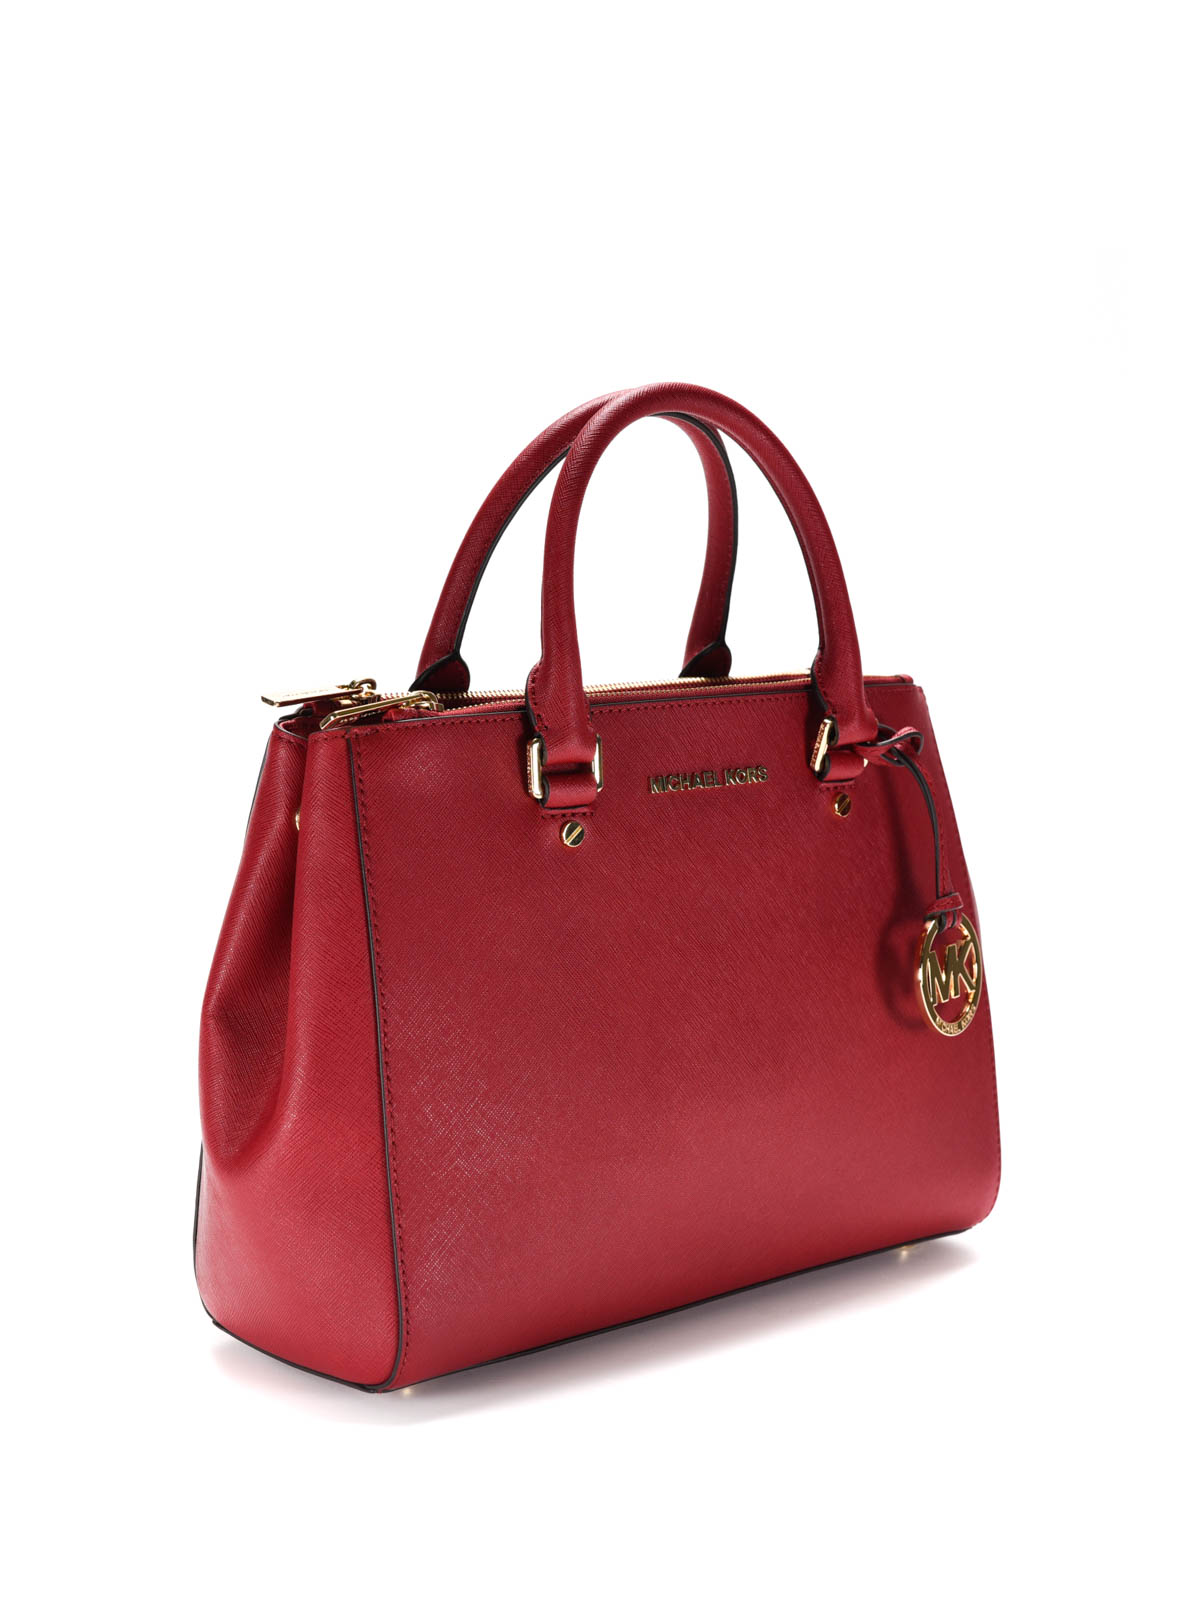 b525f5196f14bc Michael Kors Large Saffiano Tote Bags   Stanford Center for ...